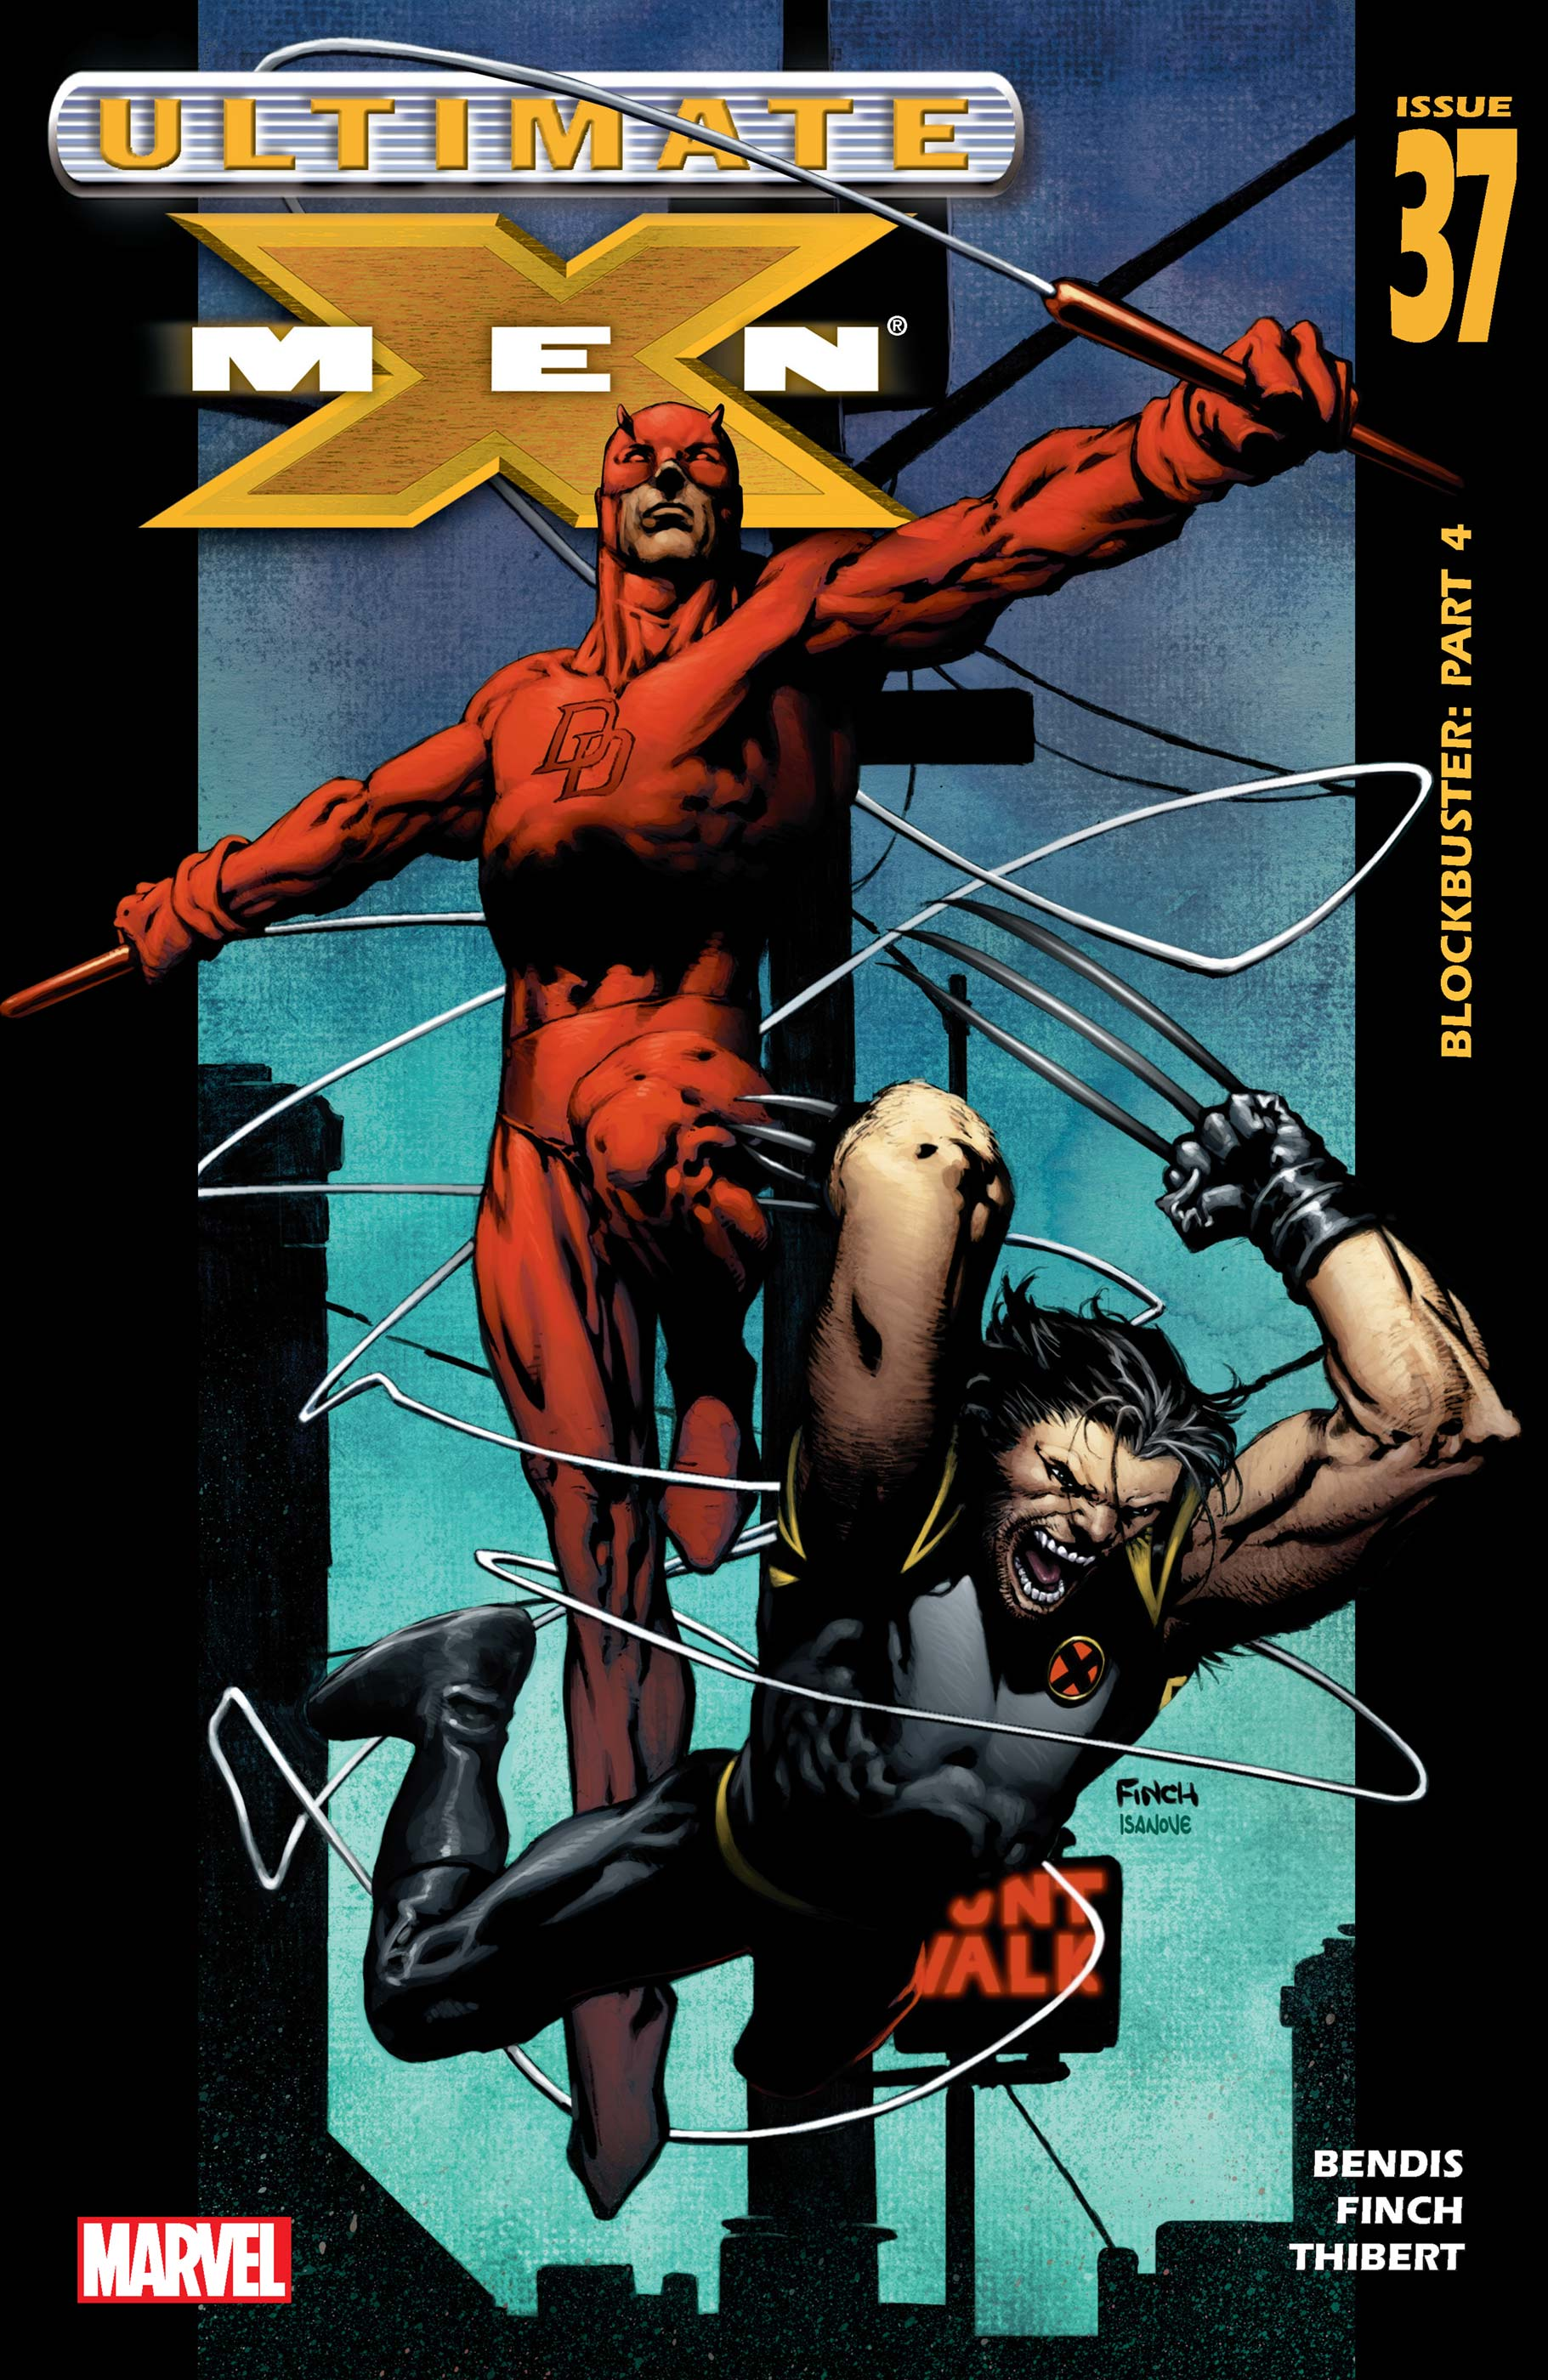 Ultimate X-Men (2000) #37